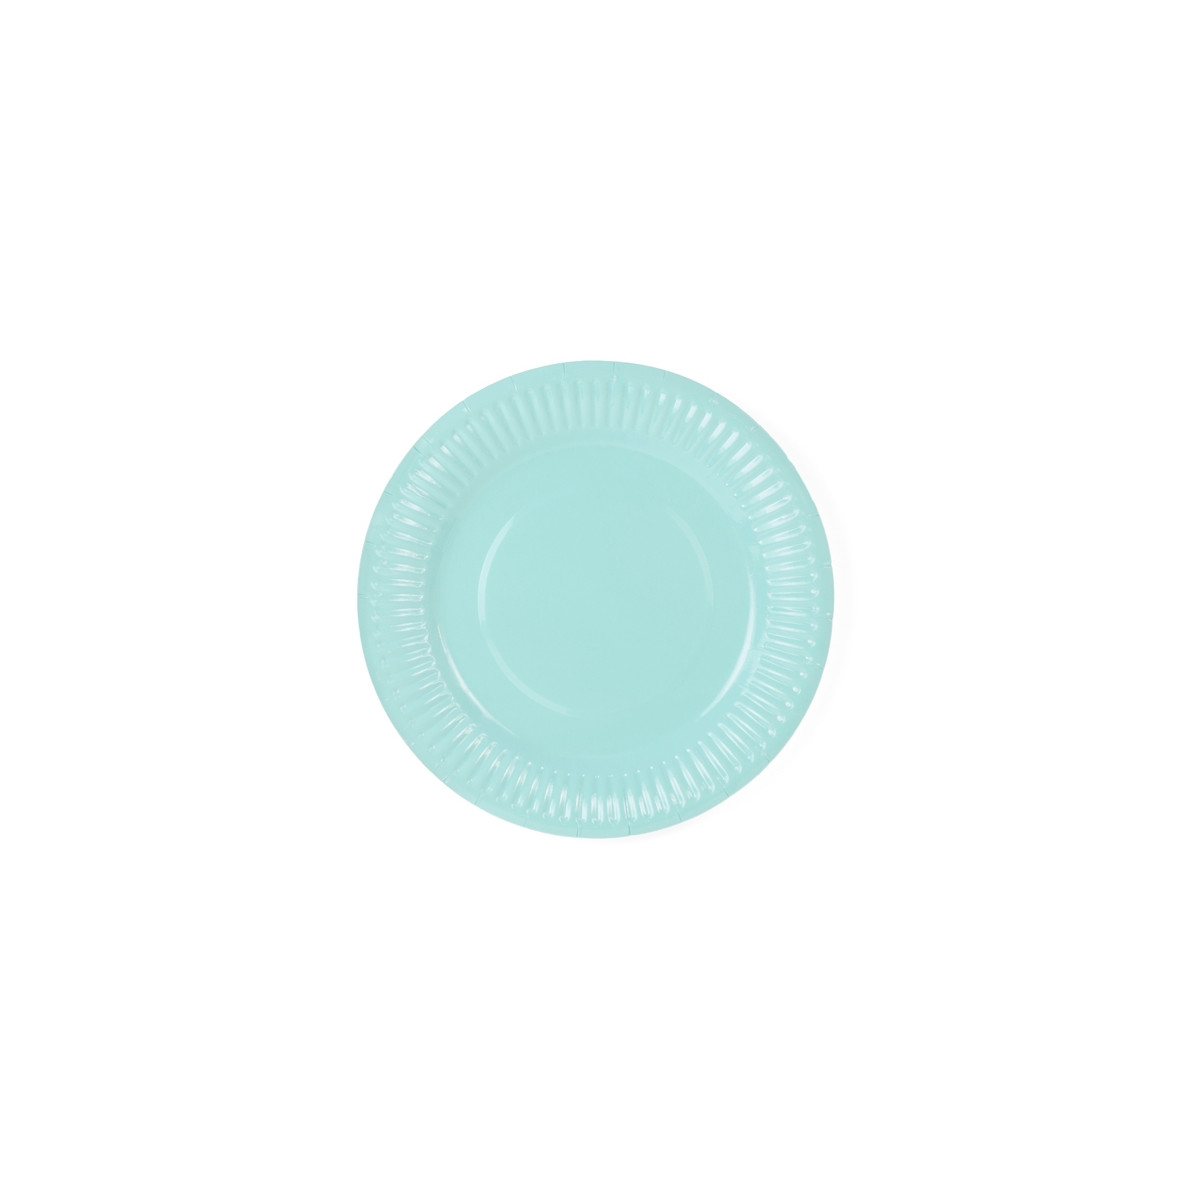 x6 Assiettes Turquoise